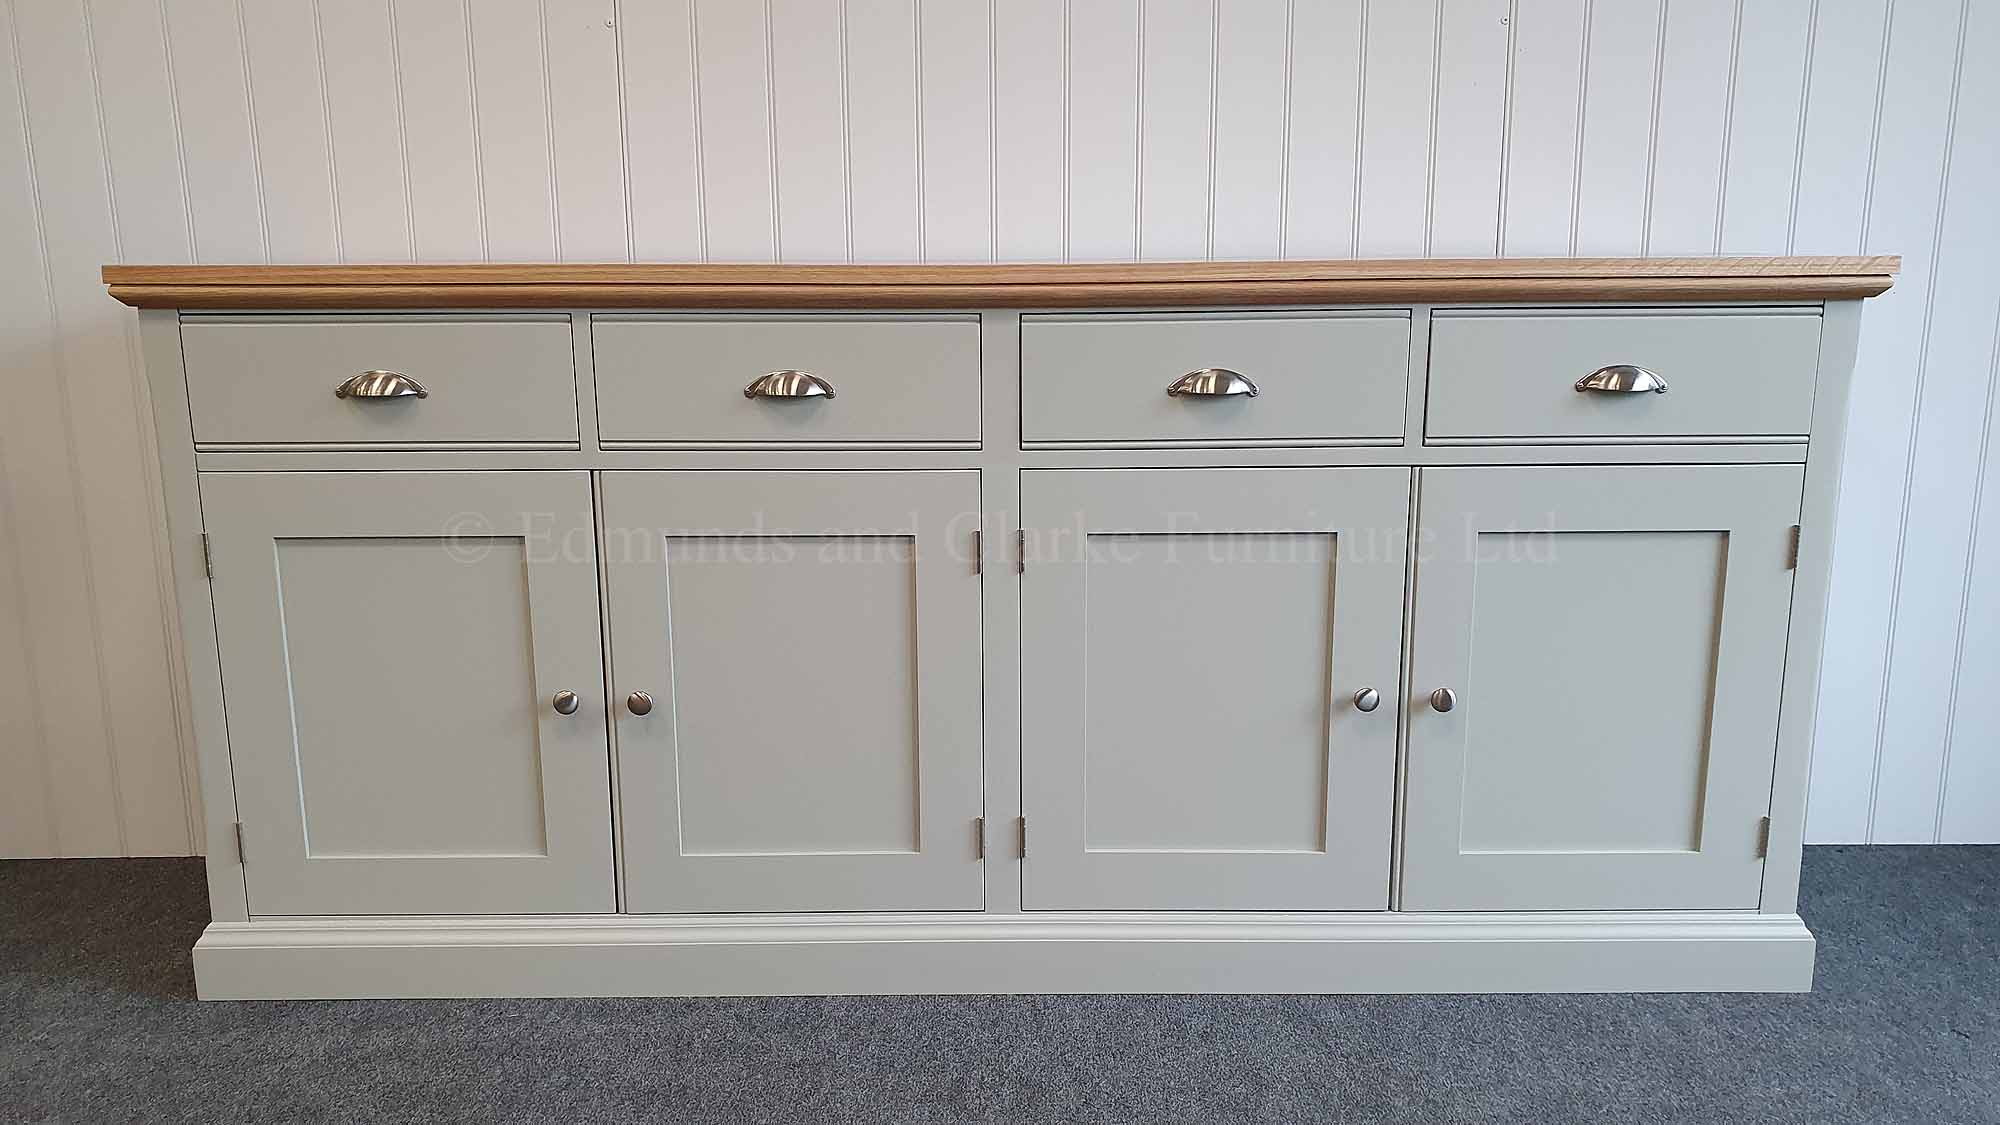 4 door 4 drawer sideboard 6ft, painted grey with oak top